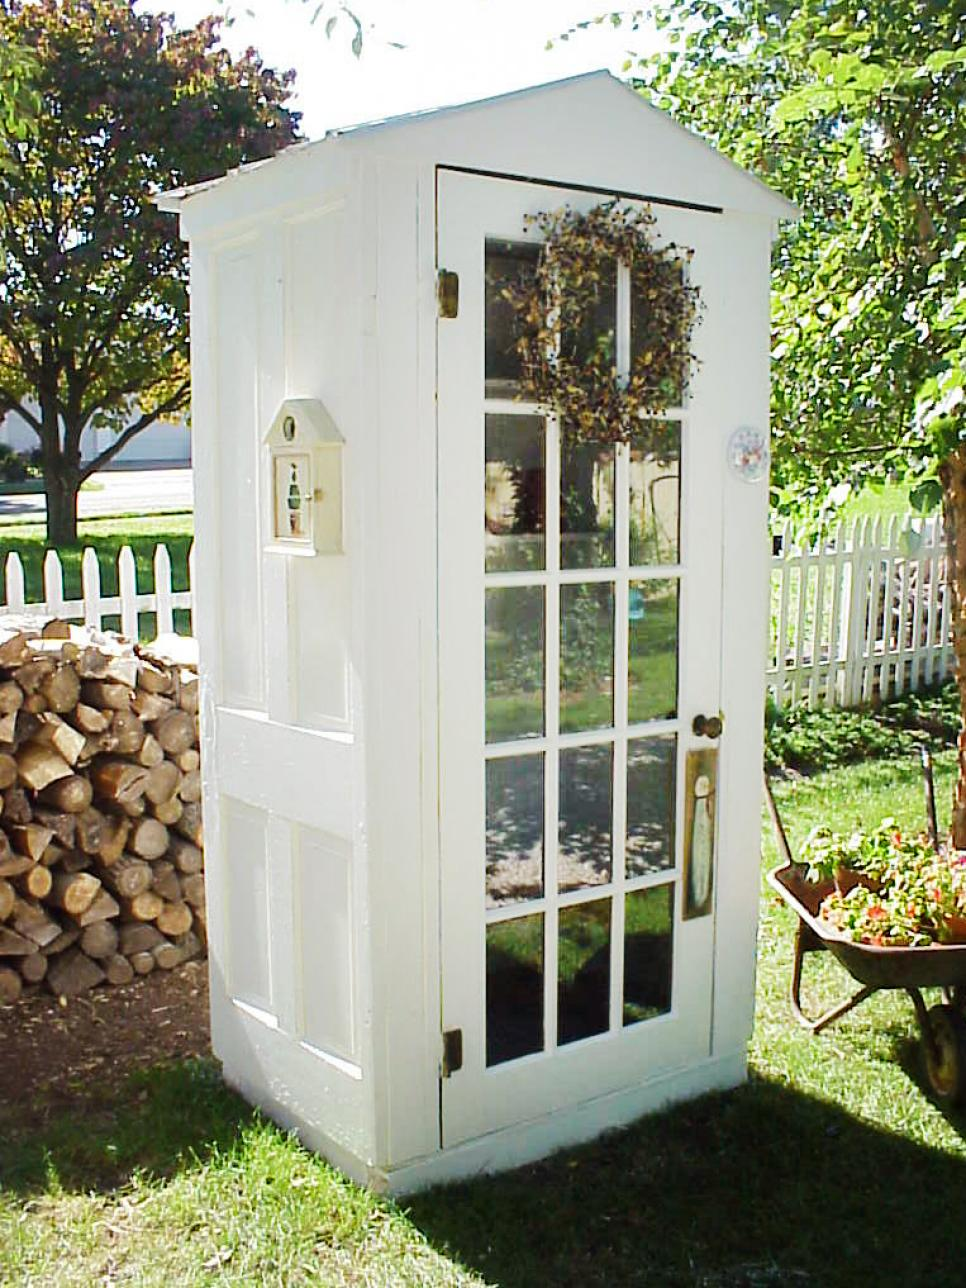 Almost free outdoor project ideas hgtv for Shed project